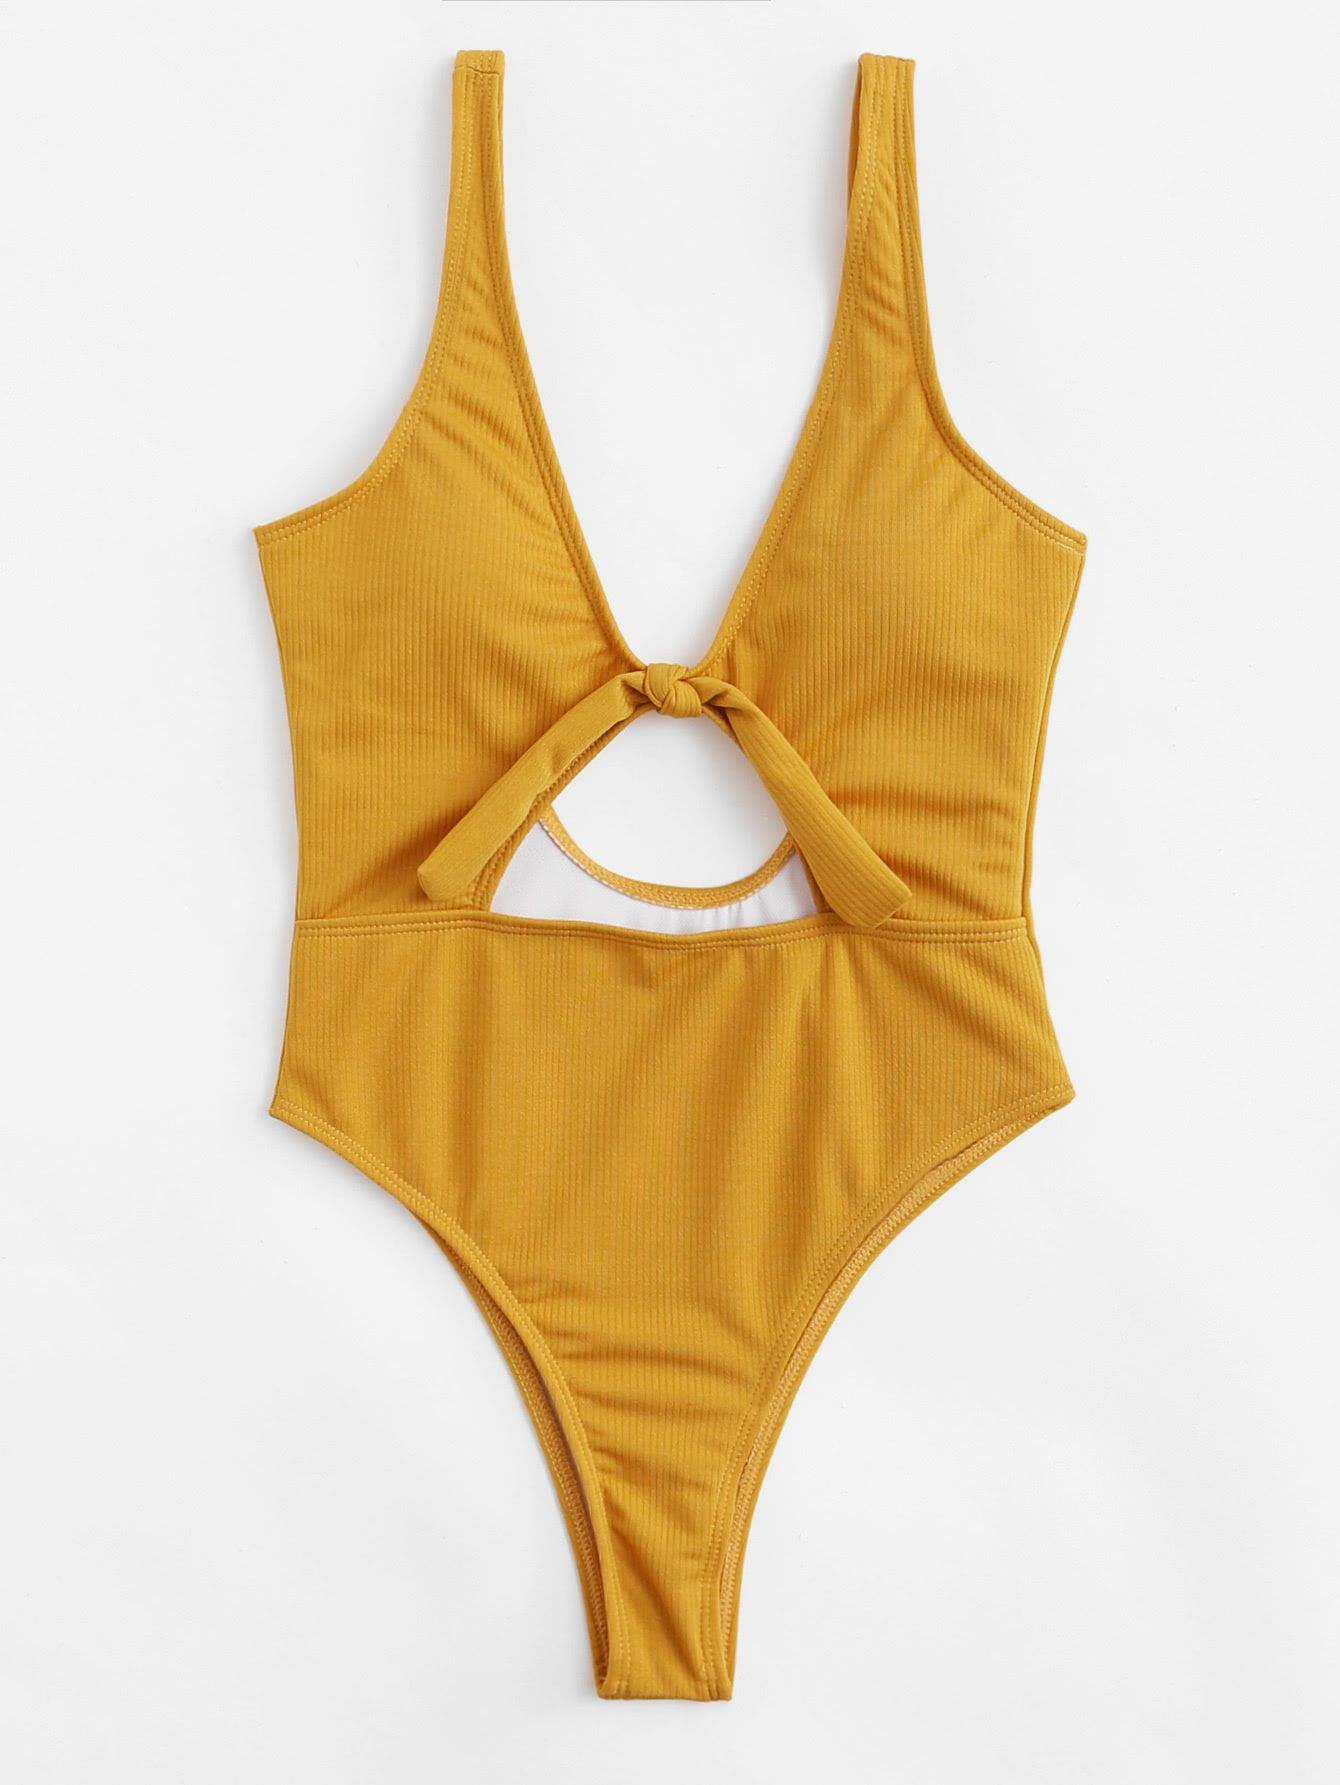 e6056d690a4 Shop Knot Cut Out Swimsuit online. SheIn offers Knot Cut Out Swimsuit &  more to fit your fashionable needs.